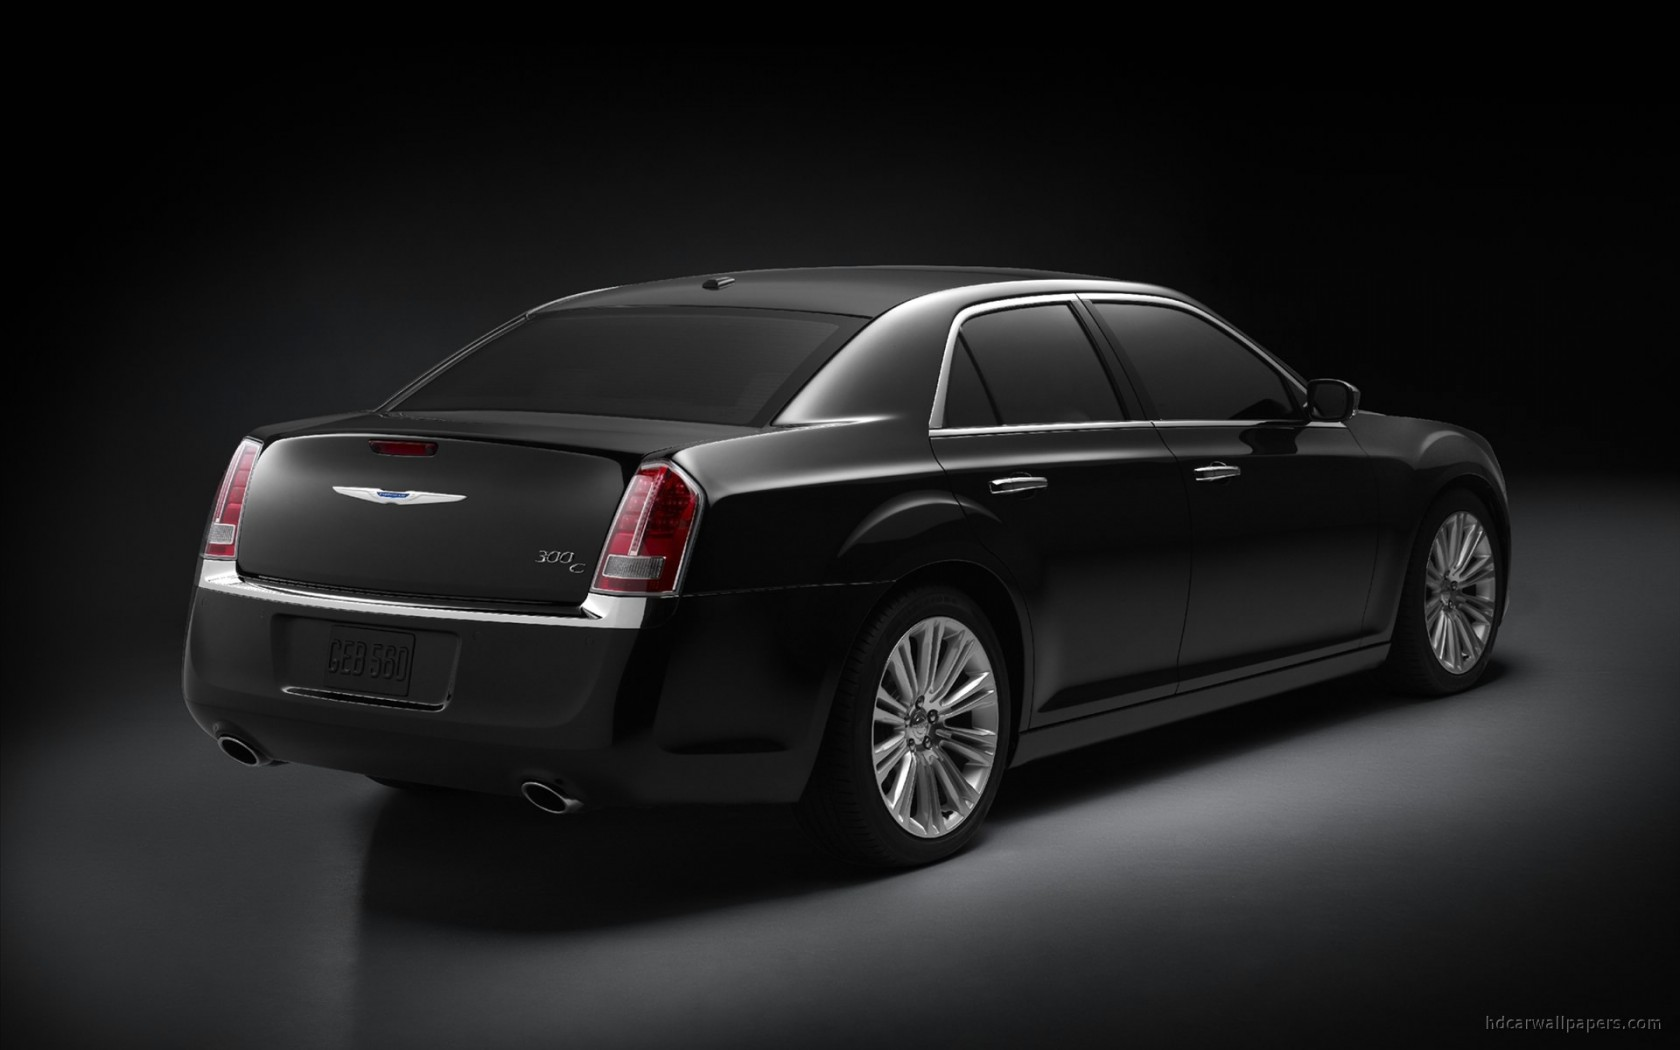 2011 Chrysler 300 2 Wallpaper Hd Car Wallpapers Id 1848